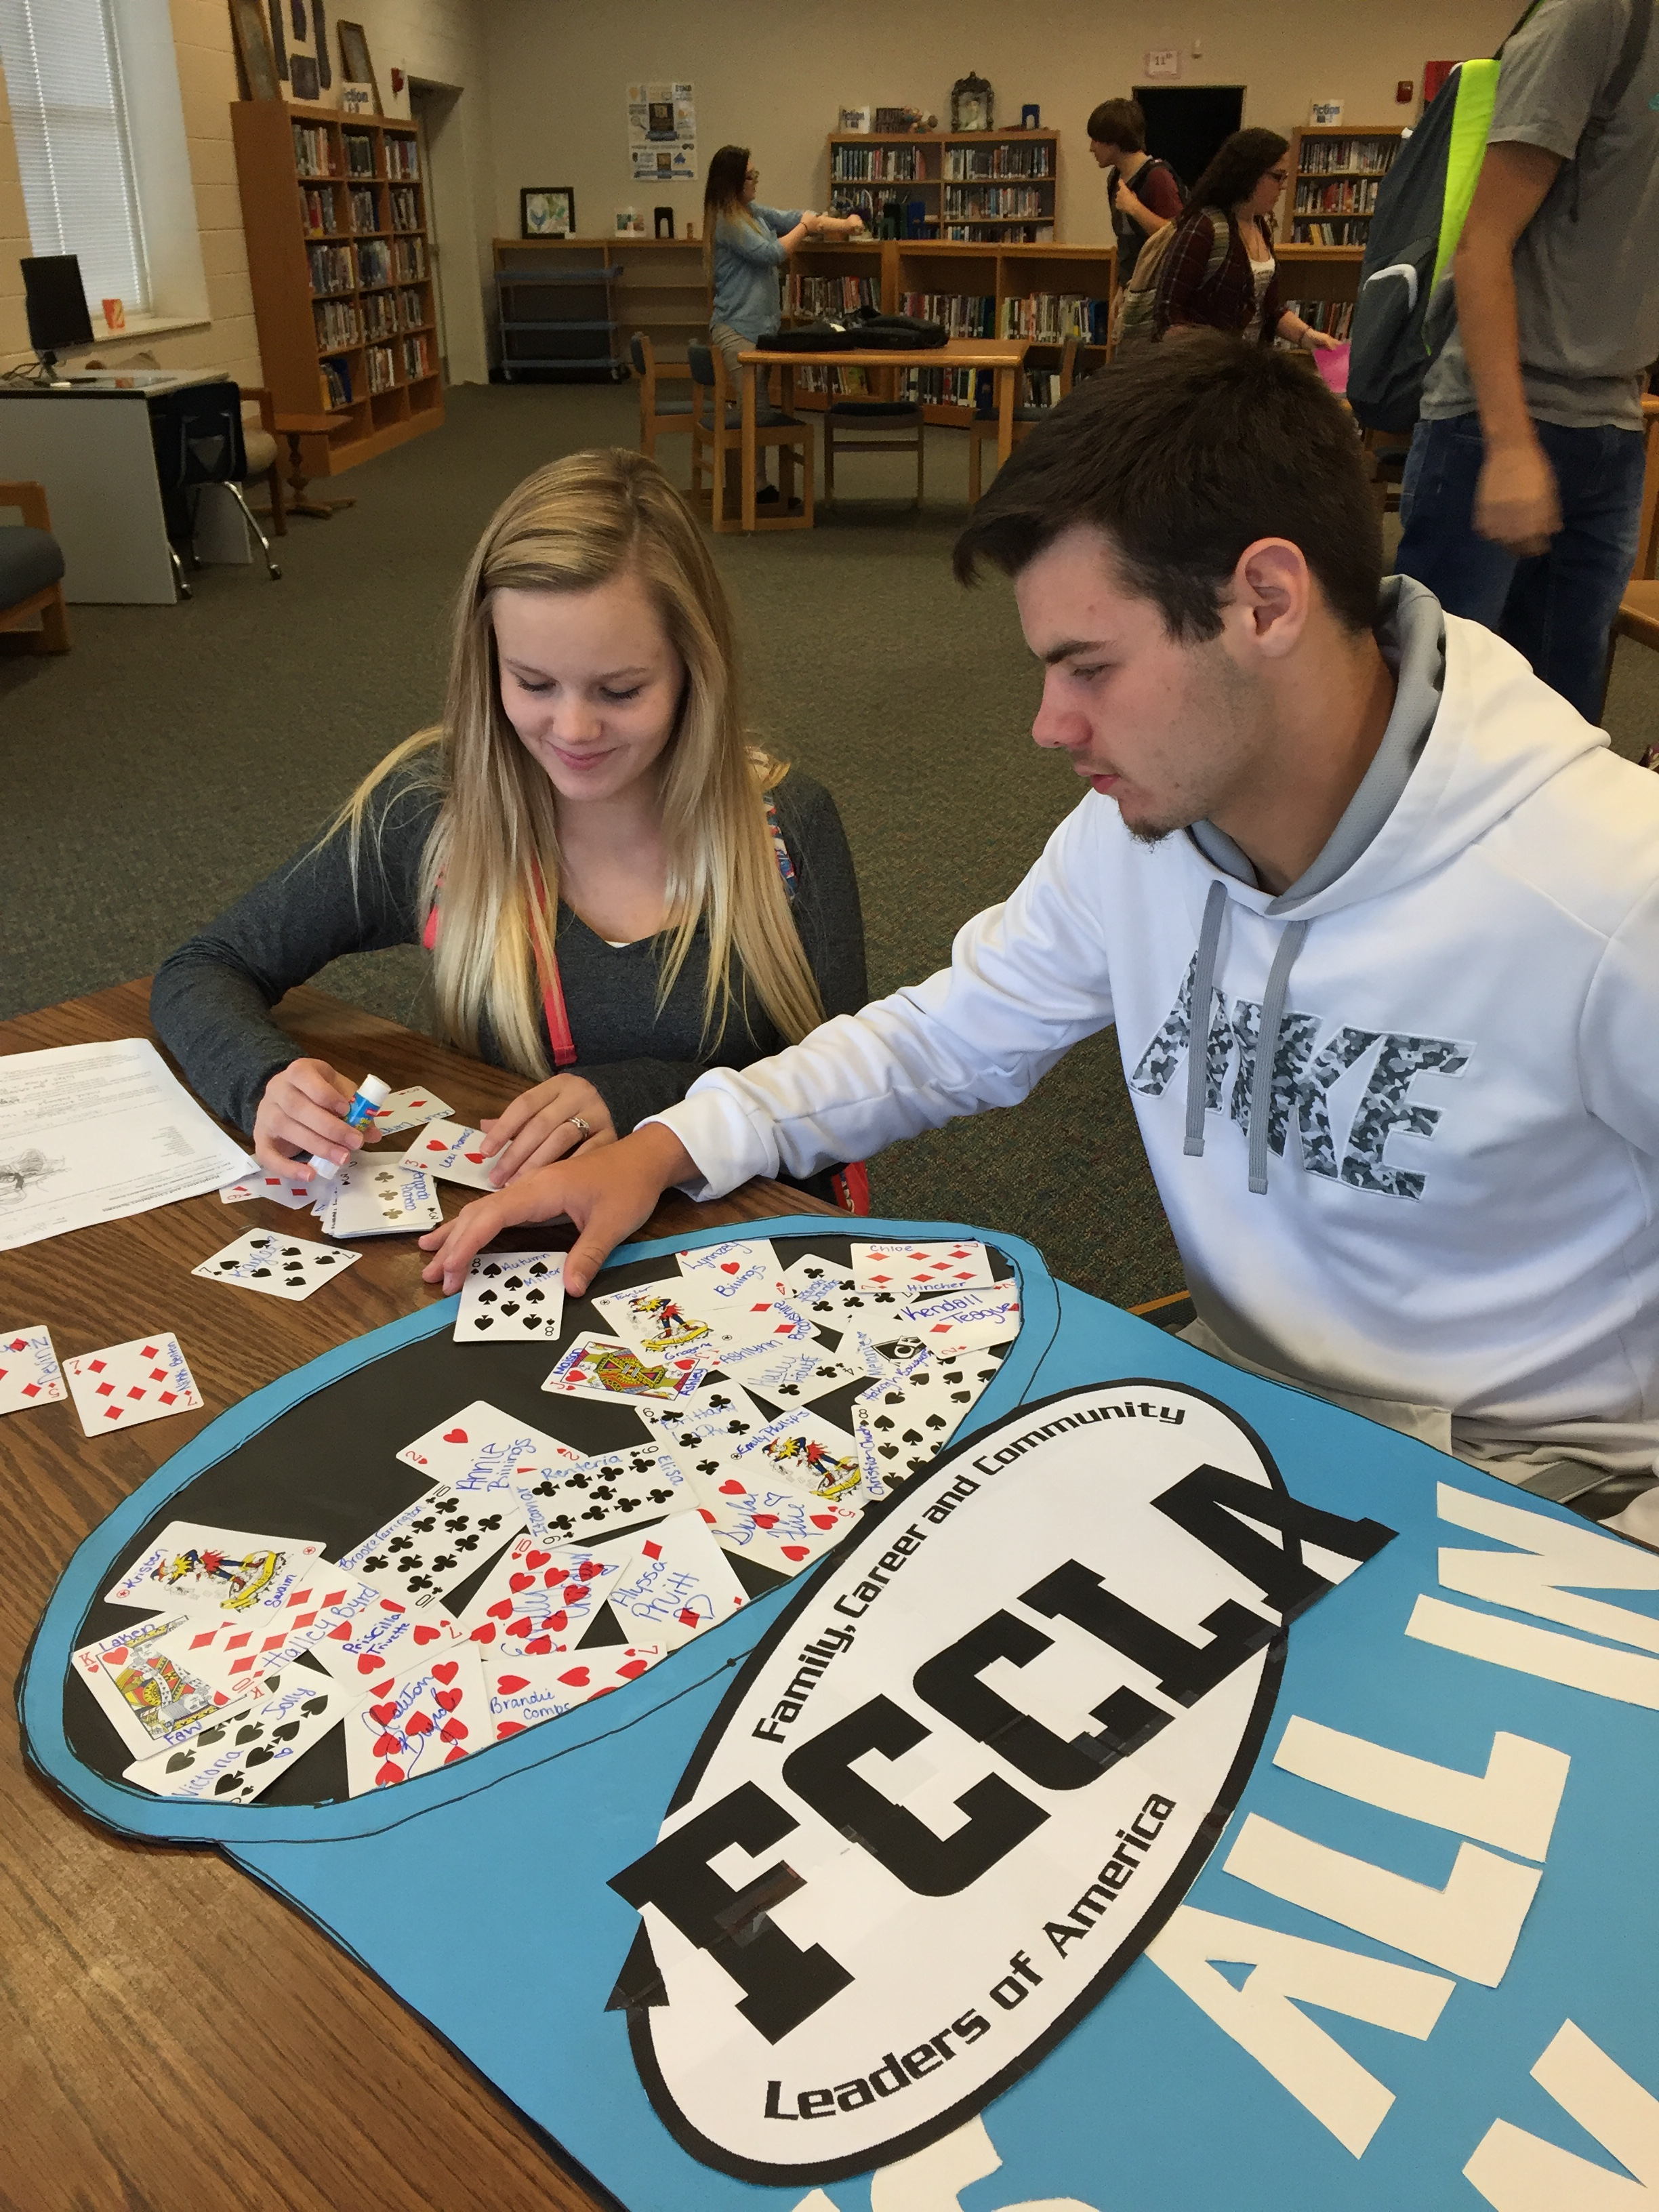 Christian and Hailey creating an FCCLA homecoming poster